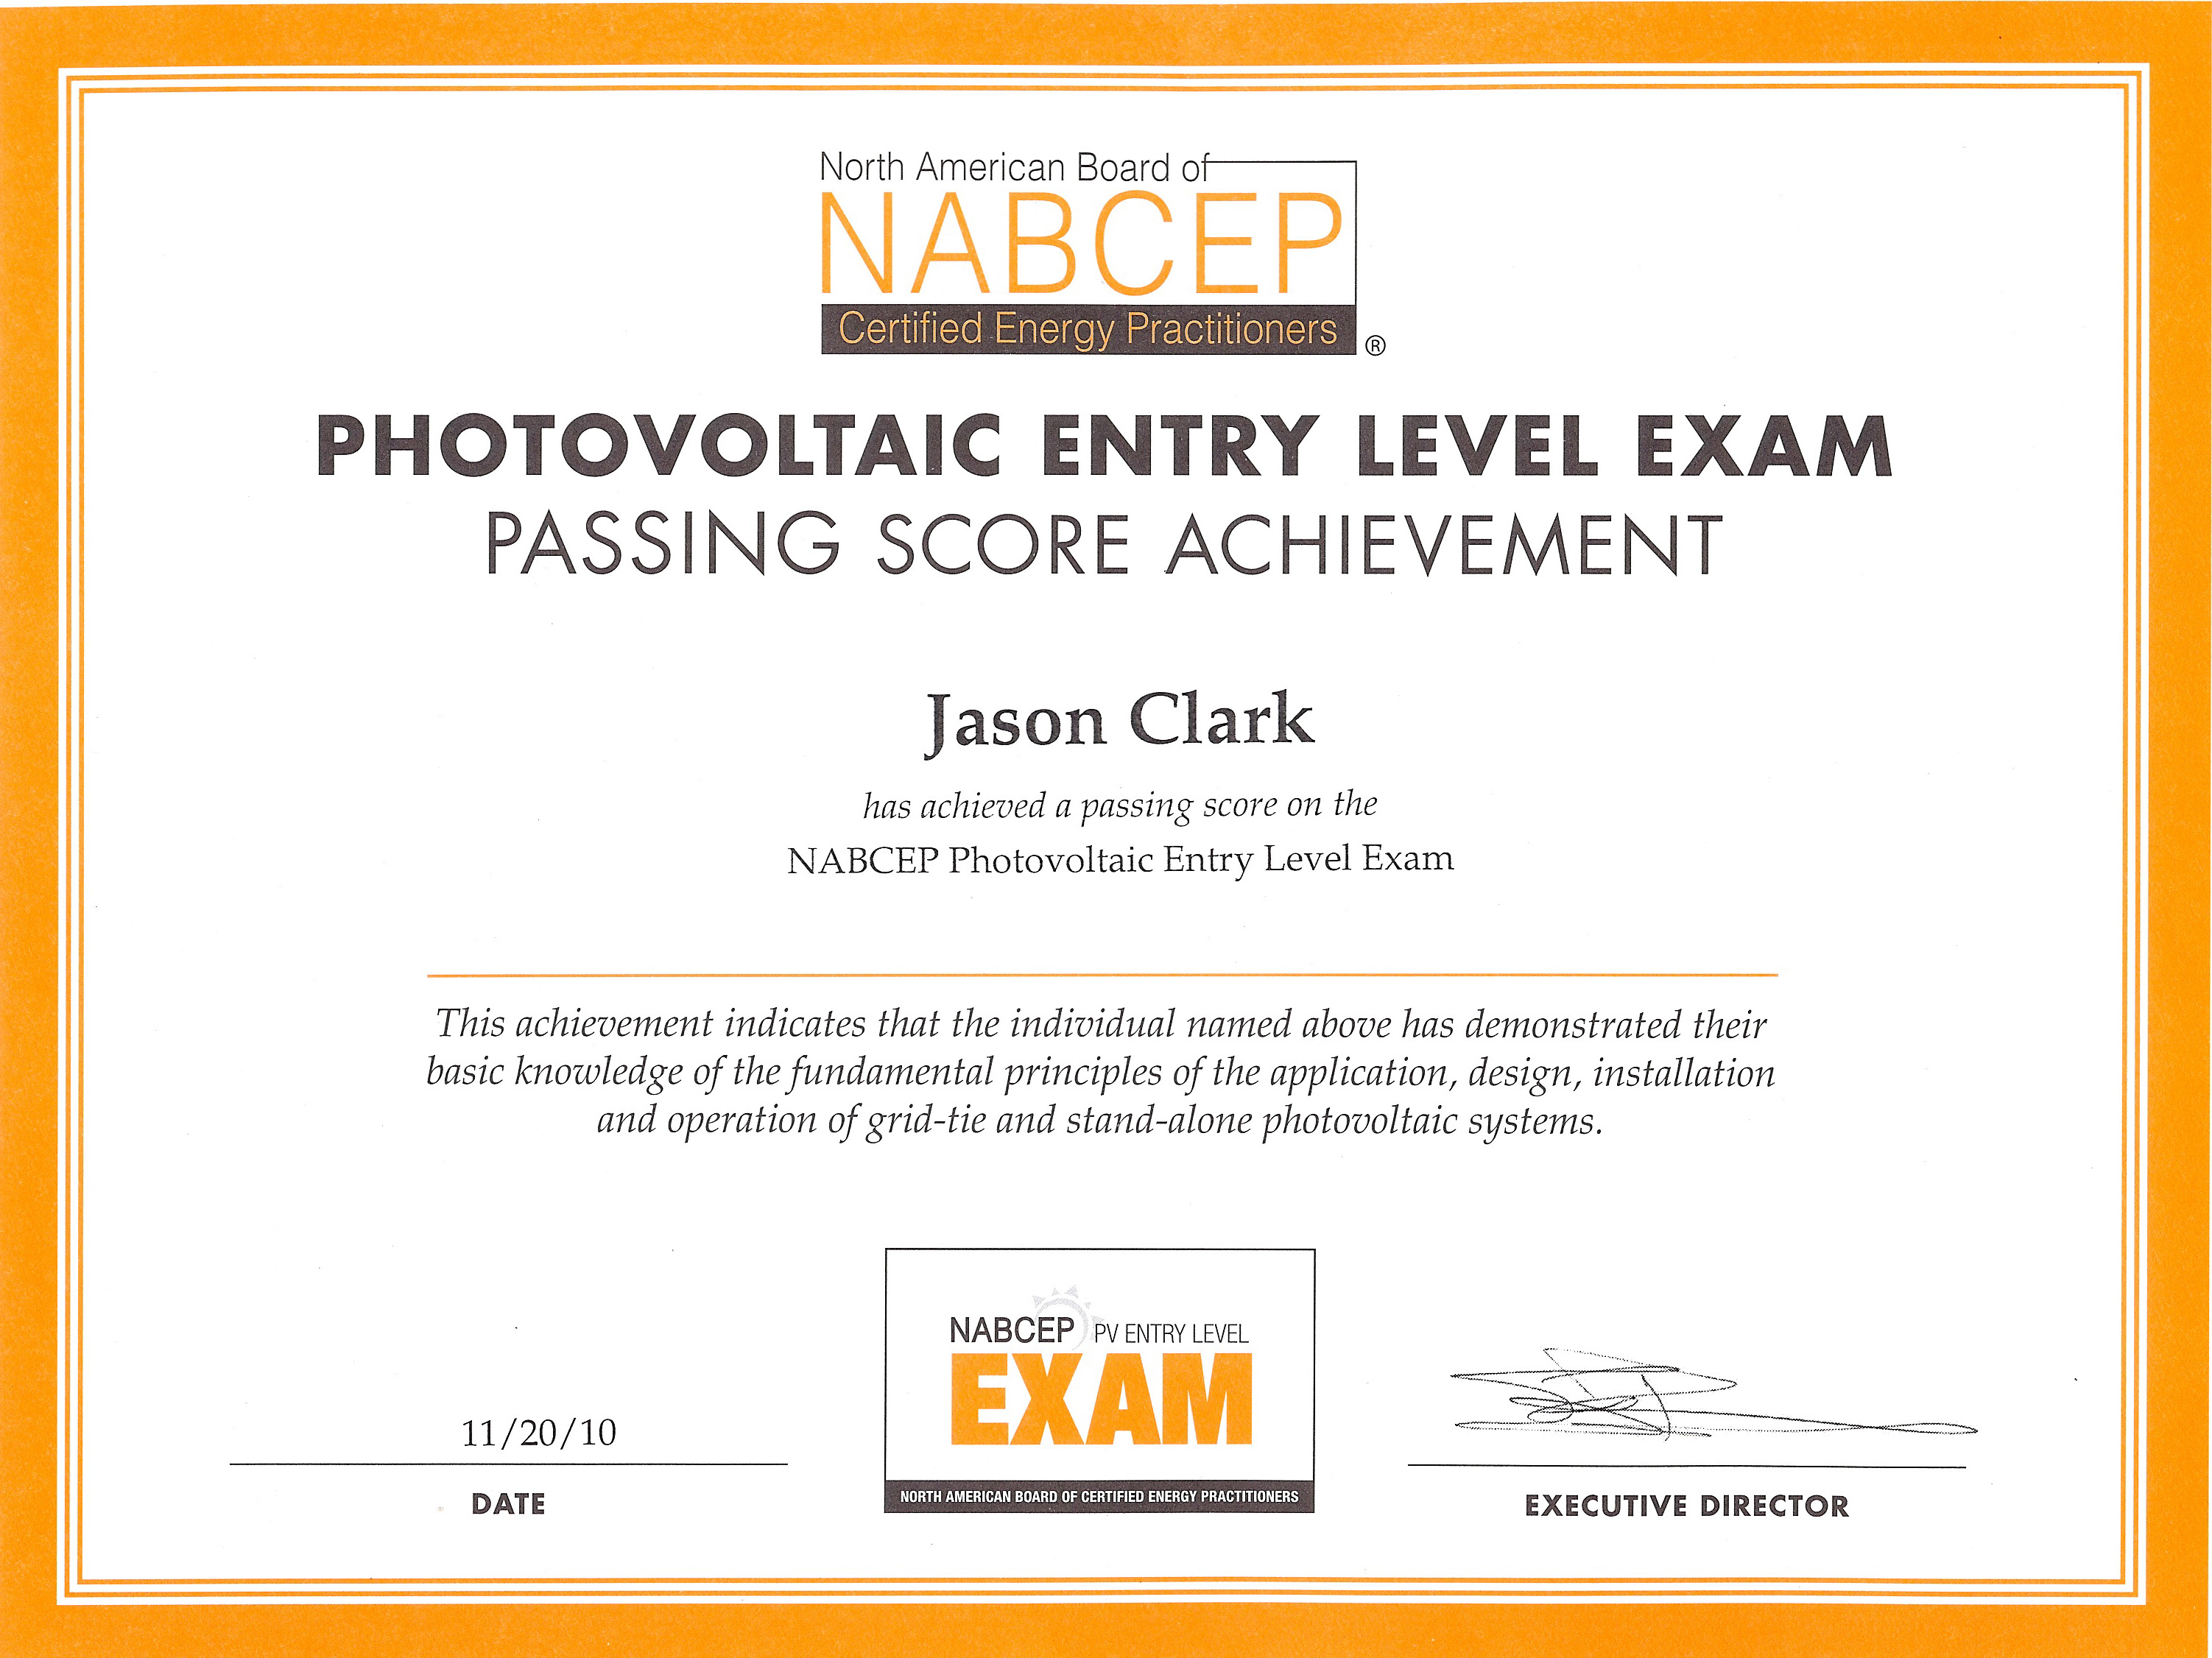 nabcep certification level energy entry certified construction north certifications board american modern photovoltaic hudson jason clark valley practitioners operation tie